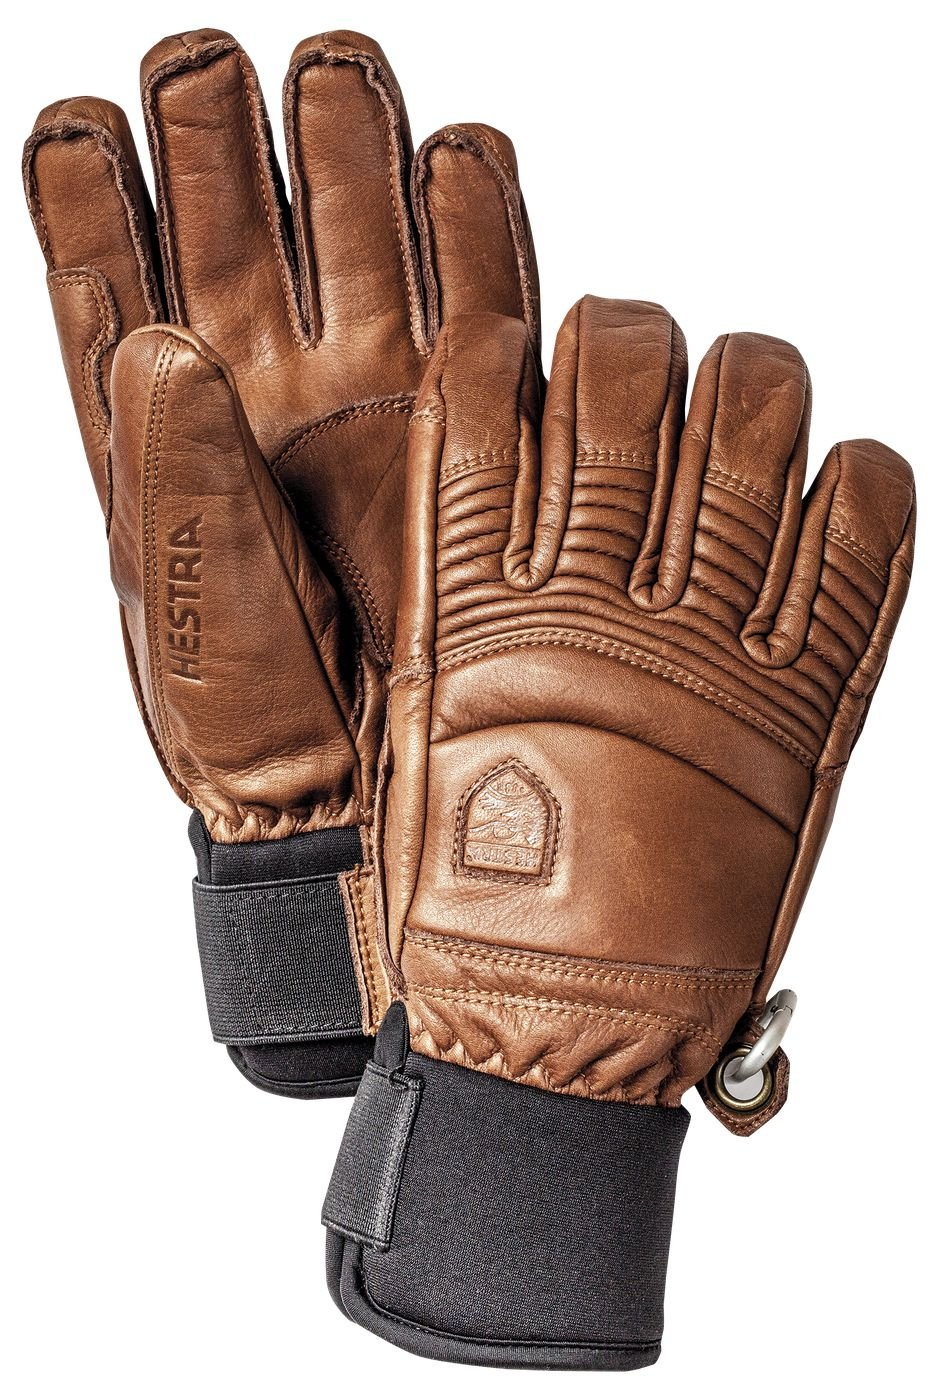 Hestra Mens Ski Gloves: Fall Line Winter Cold Weather Leather Gloves, Brown, 11